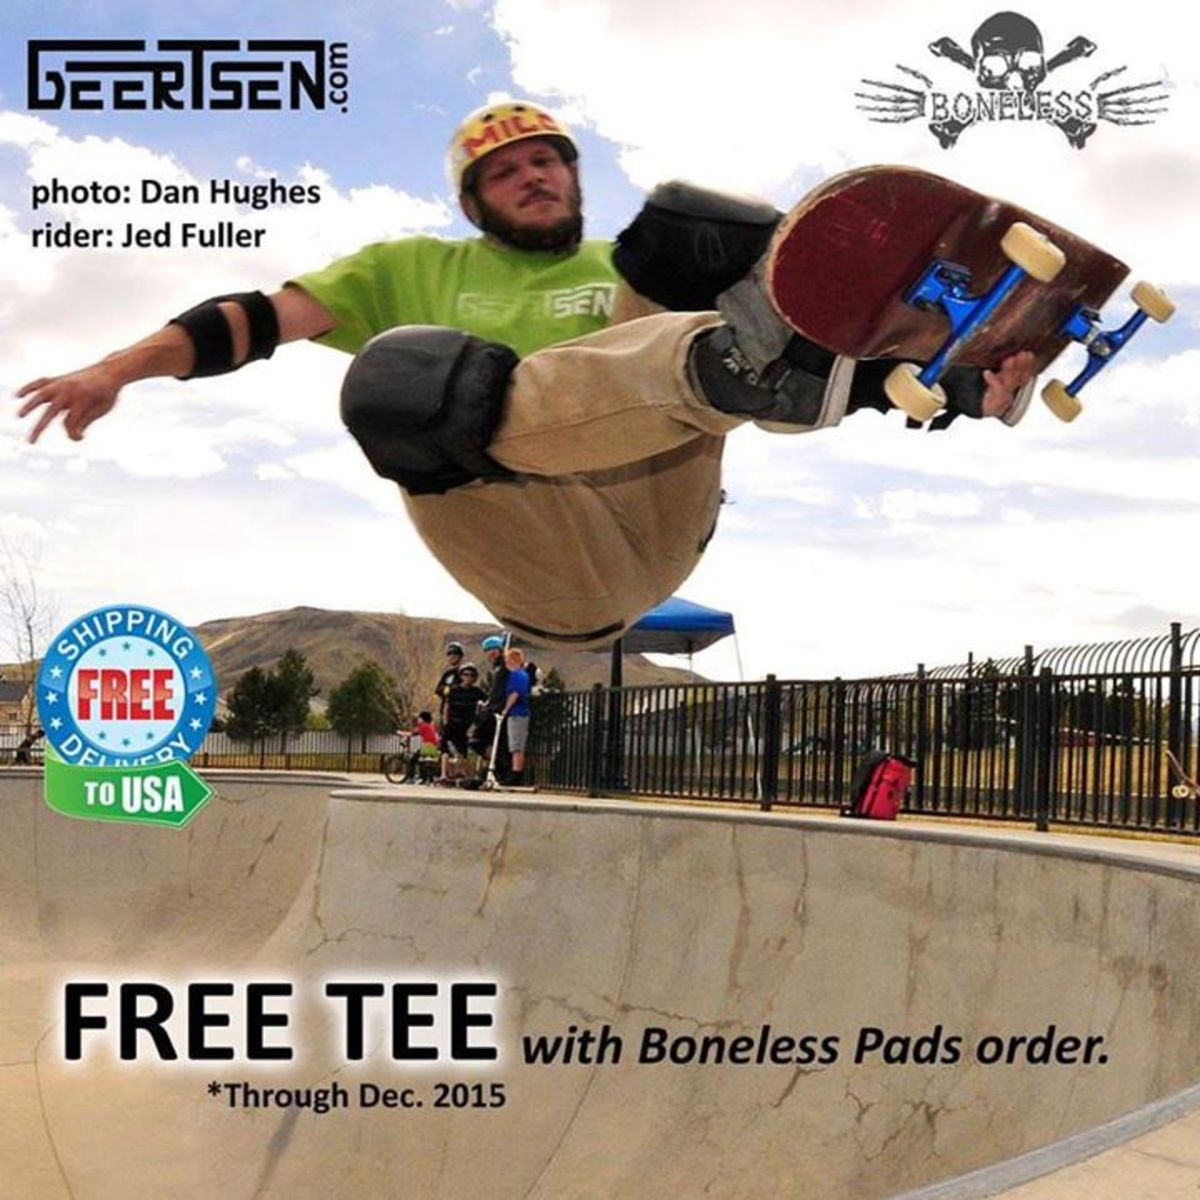 Free Tee with purchase of Boneless Knee Pads